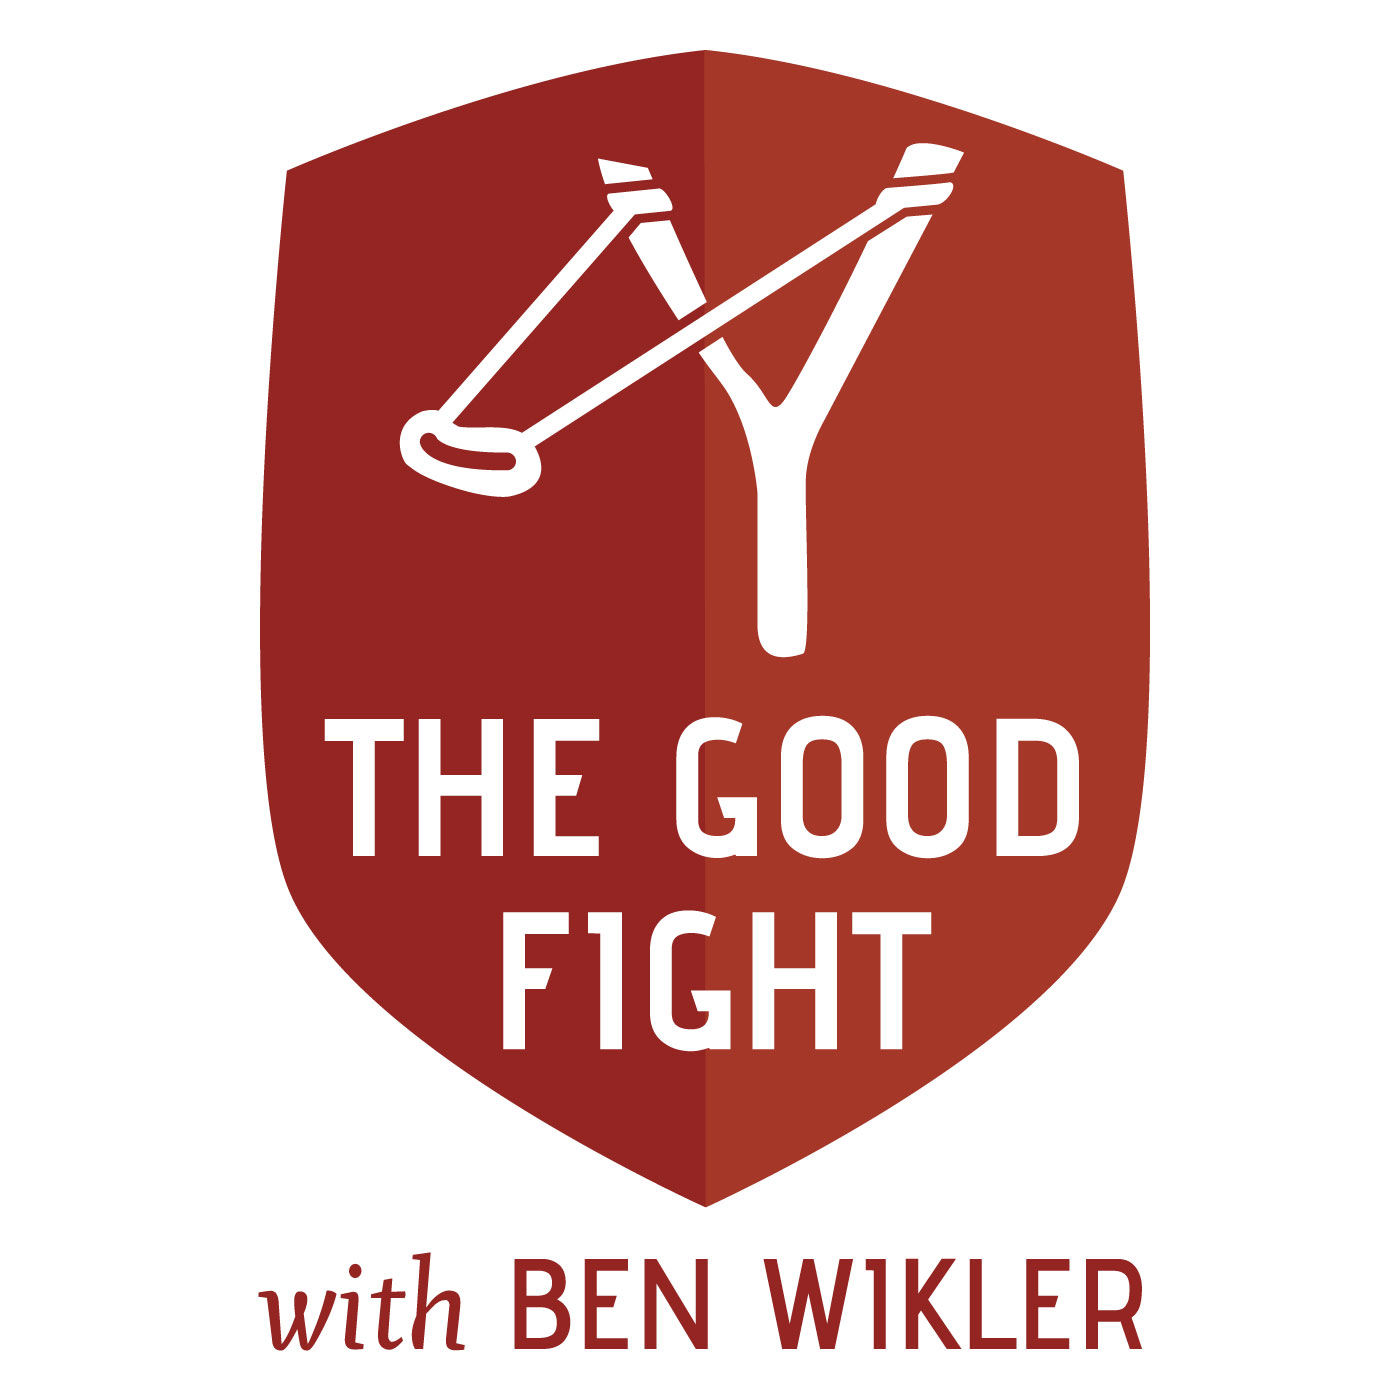 The Good Fight, with Ben Wikler